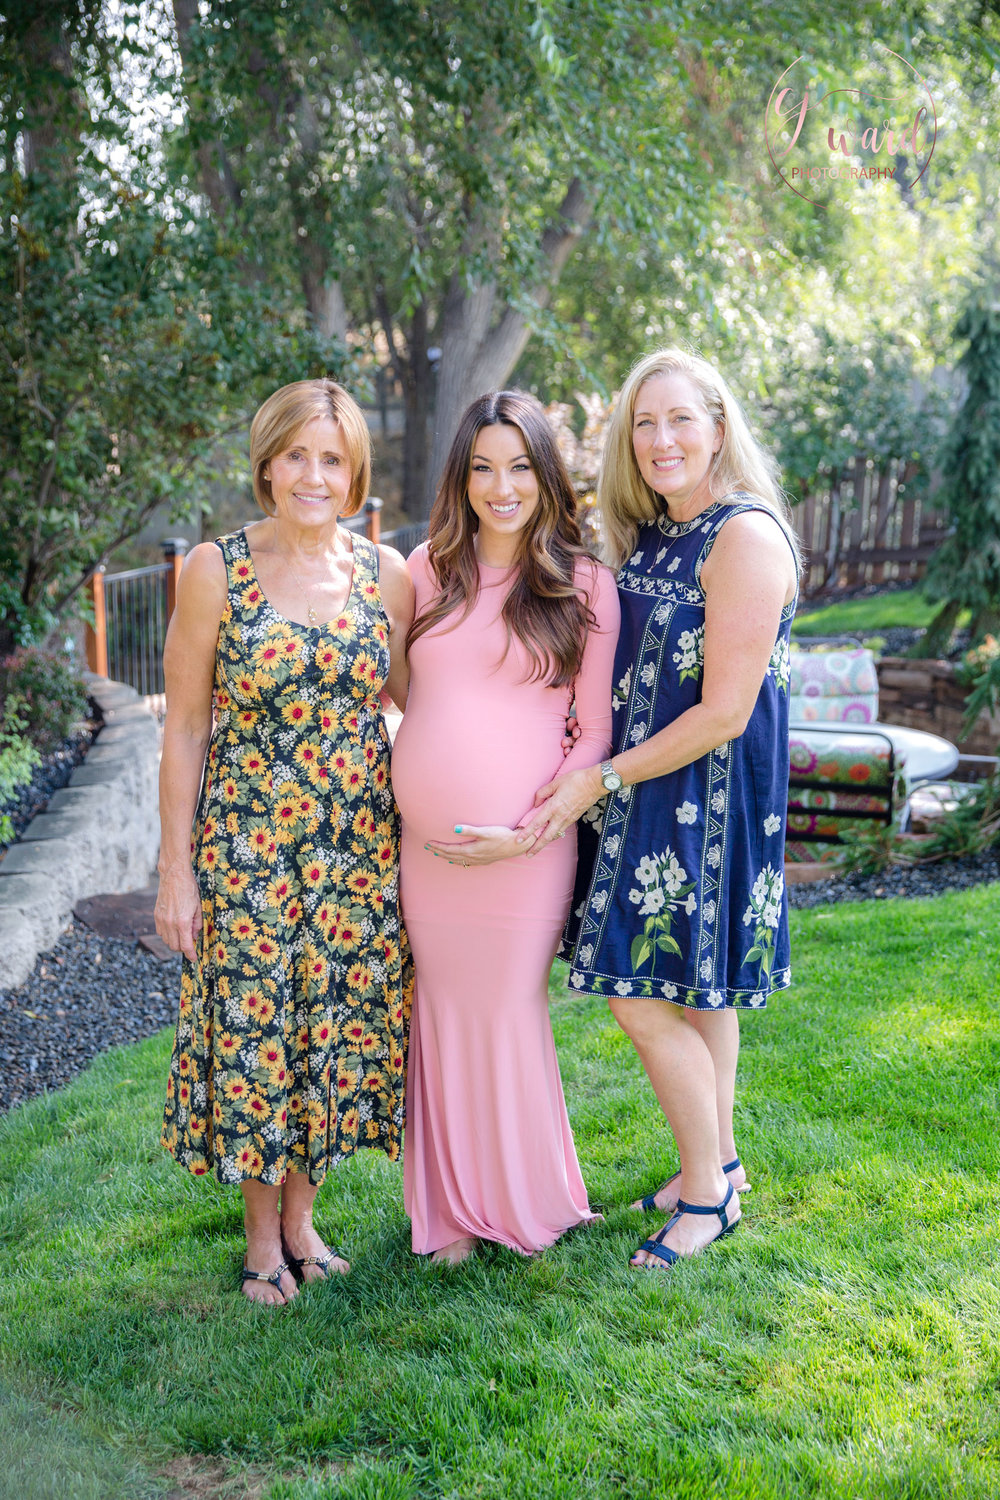 Boise-Family-Photographer-Baby-Shower-Baby-Girl-Tea-Party-Maternity-CJ-Ward-Photography-10.jpg